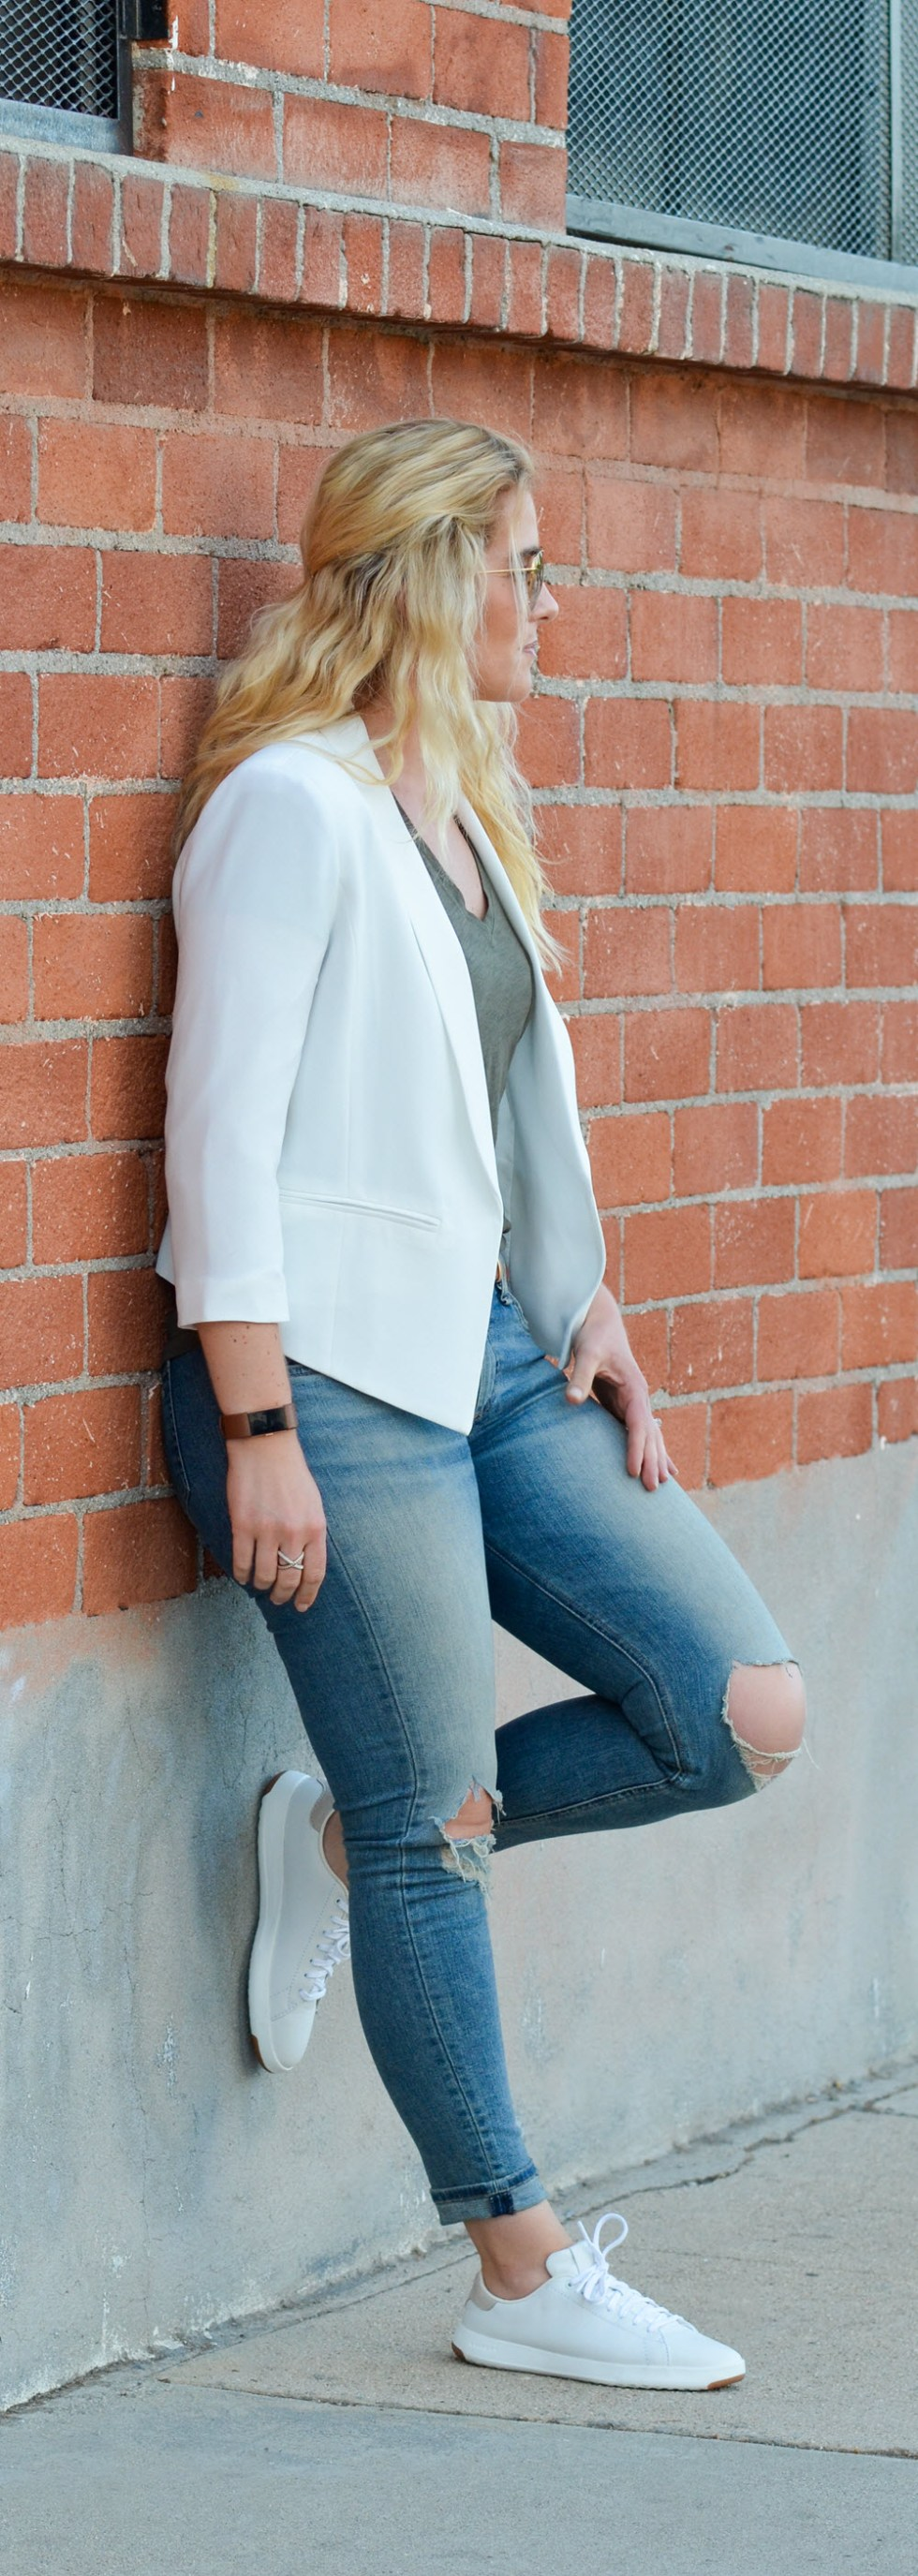 How to Wear Jeans with White Sneakers + Blazer Outfit. Sporty Chic OOTD.